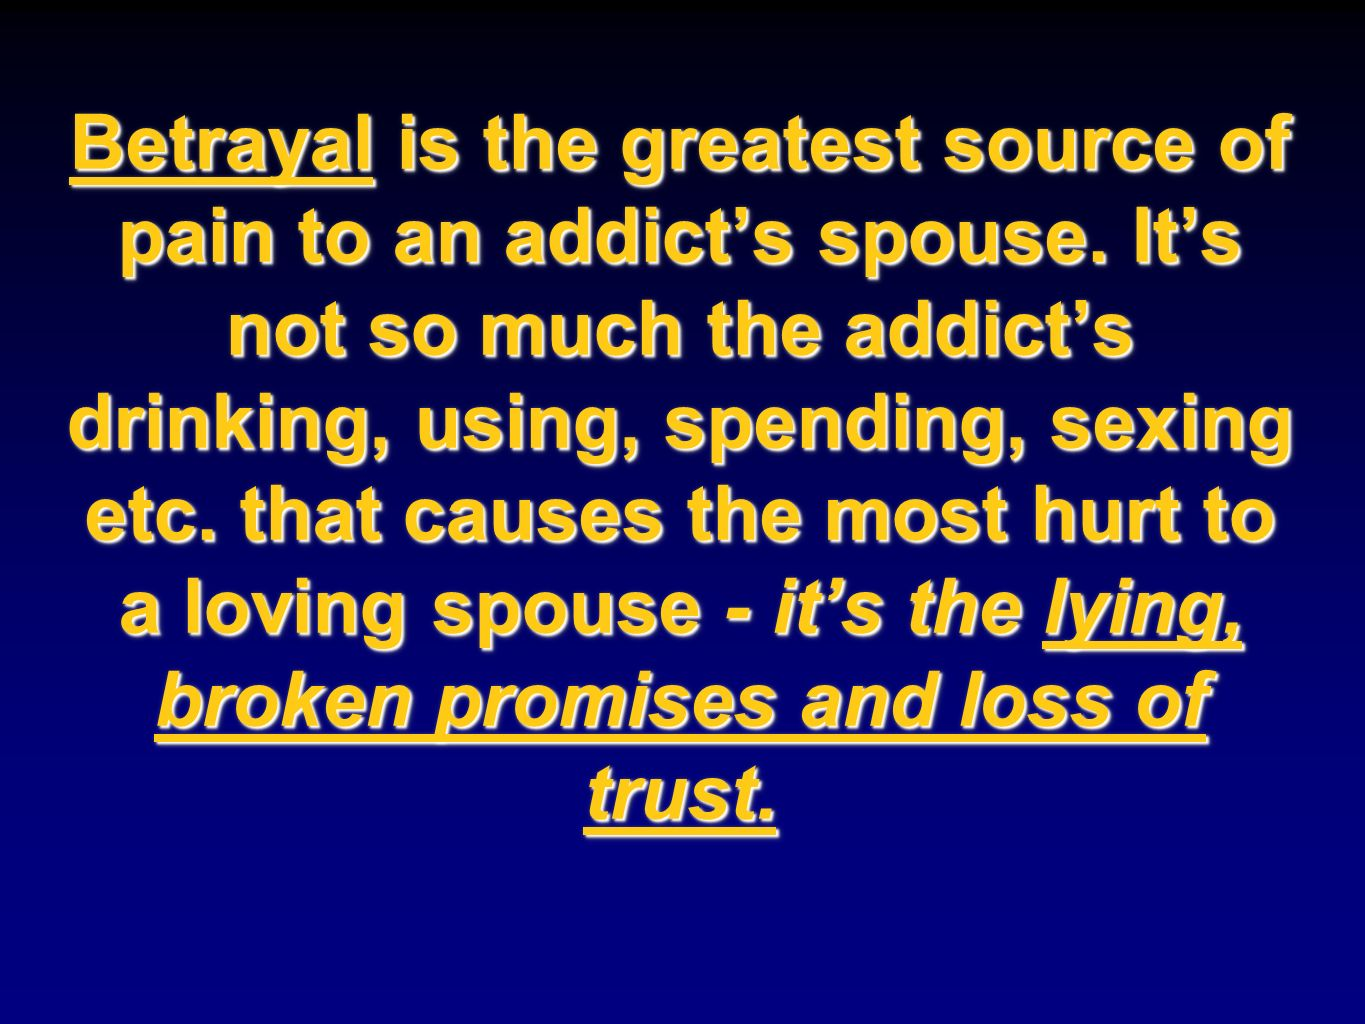 Betrayal is the greatest source of pain to an addicts spouse. Its not so much the addicts drinking, using, spending, sexing etc. that causes the most